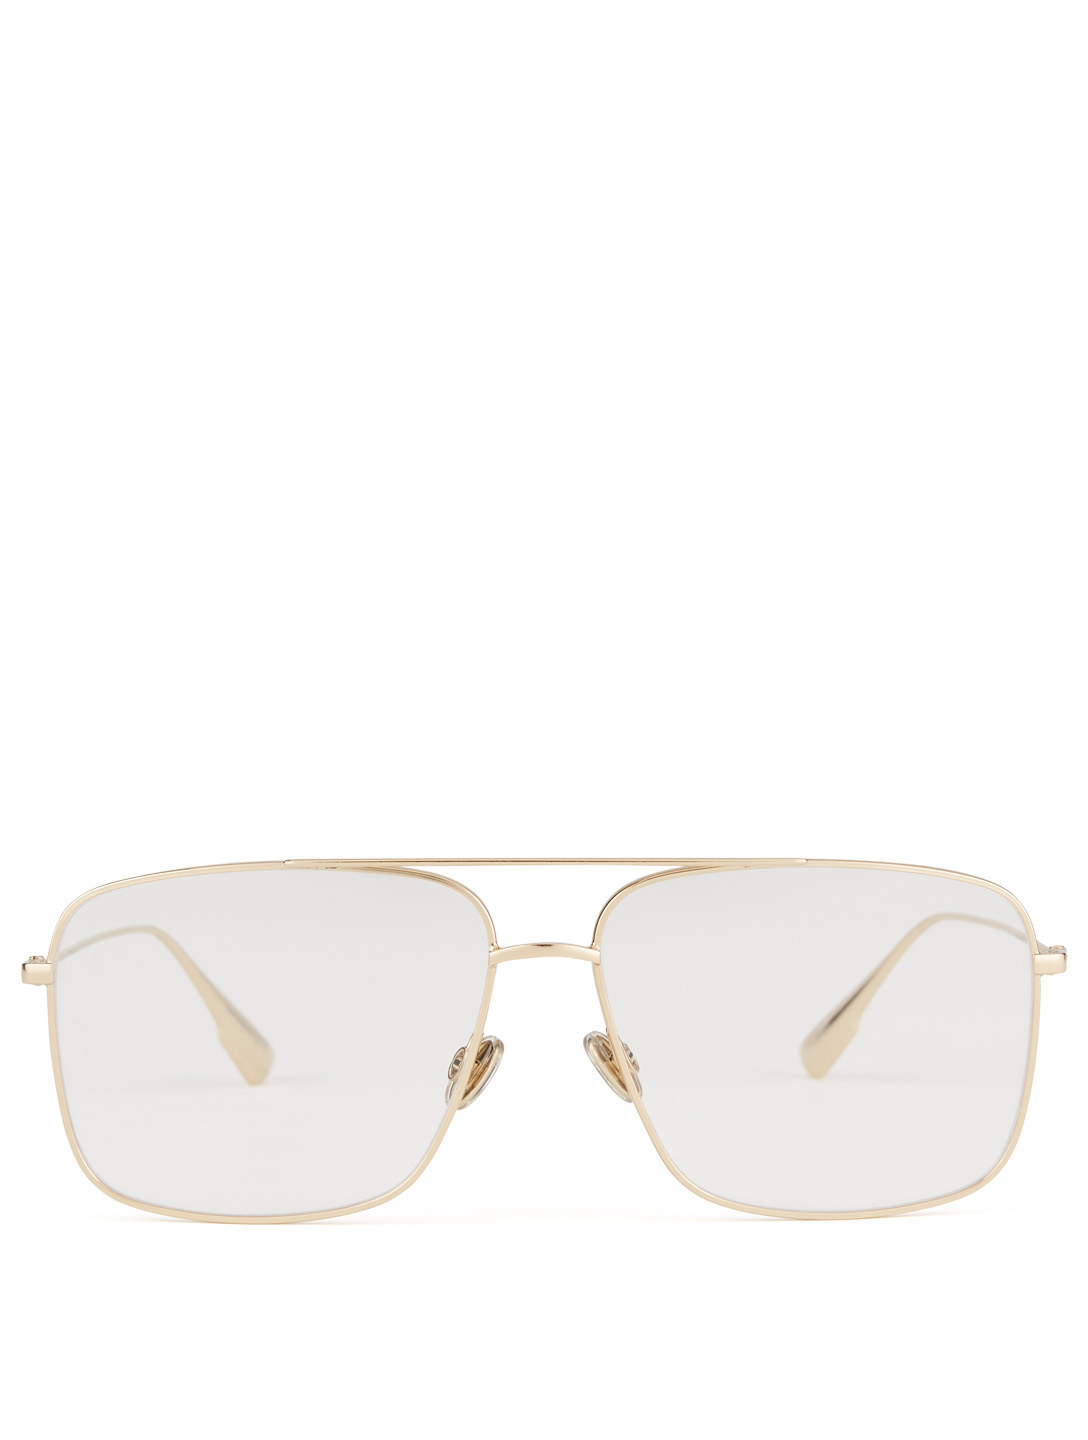 DIOR DiorStellaireO3 Navigator Optical Glasses Women's Gold